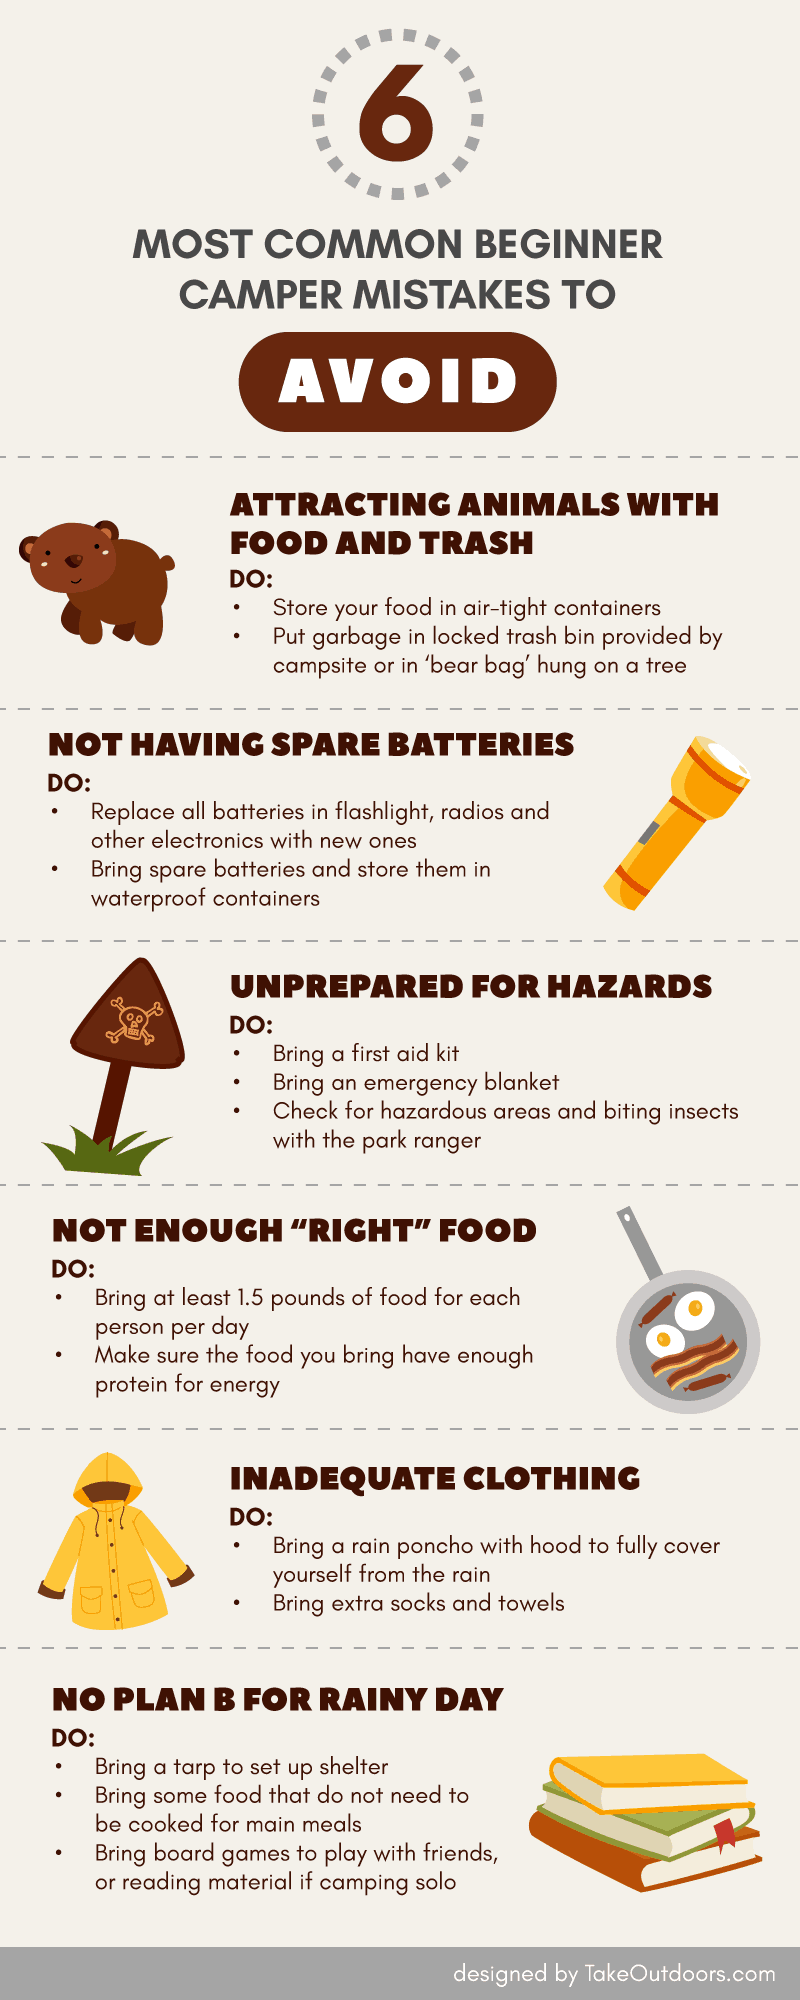 Infographic on Common Beginner Camper Mistakes